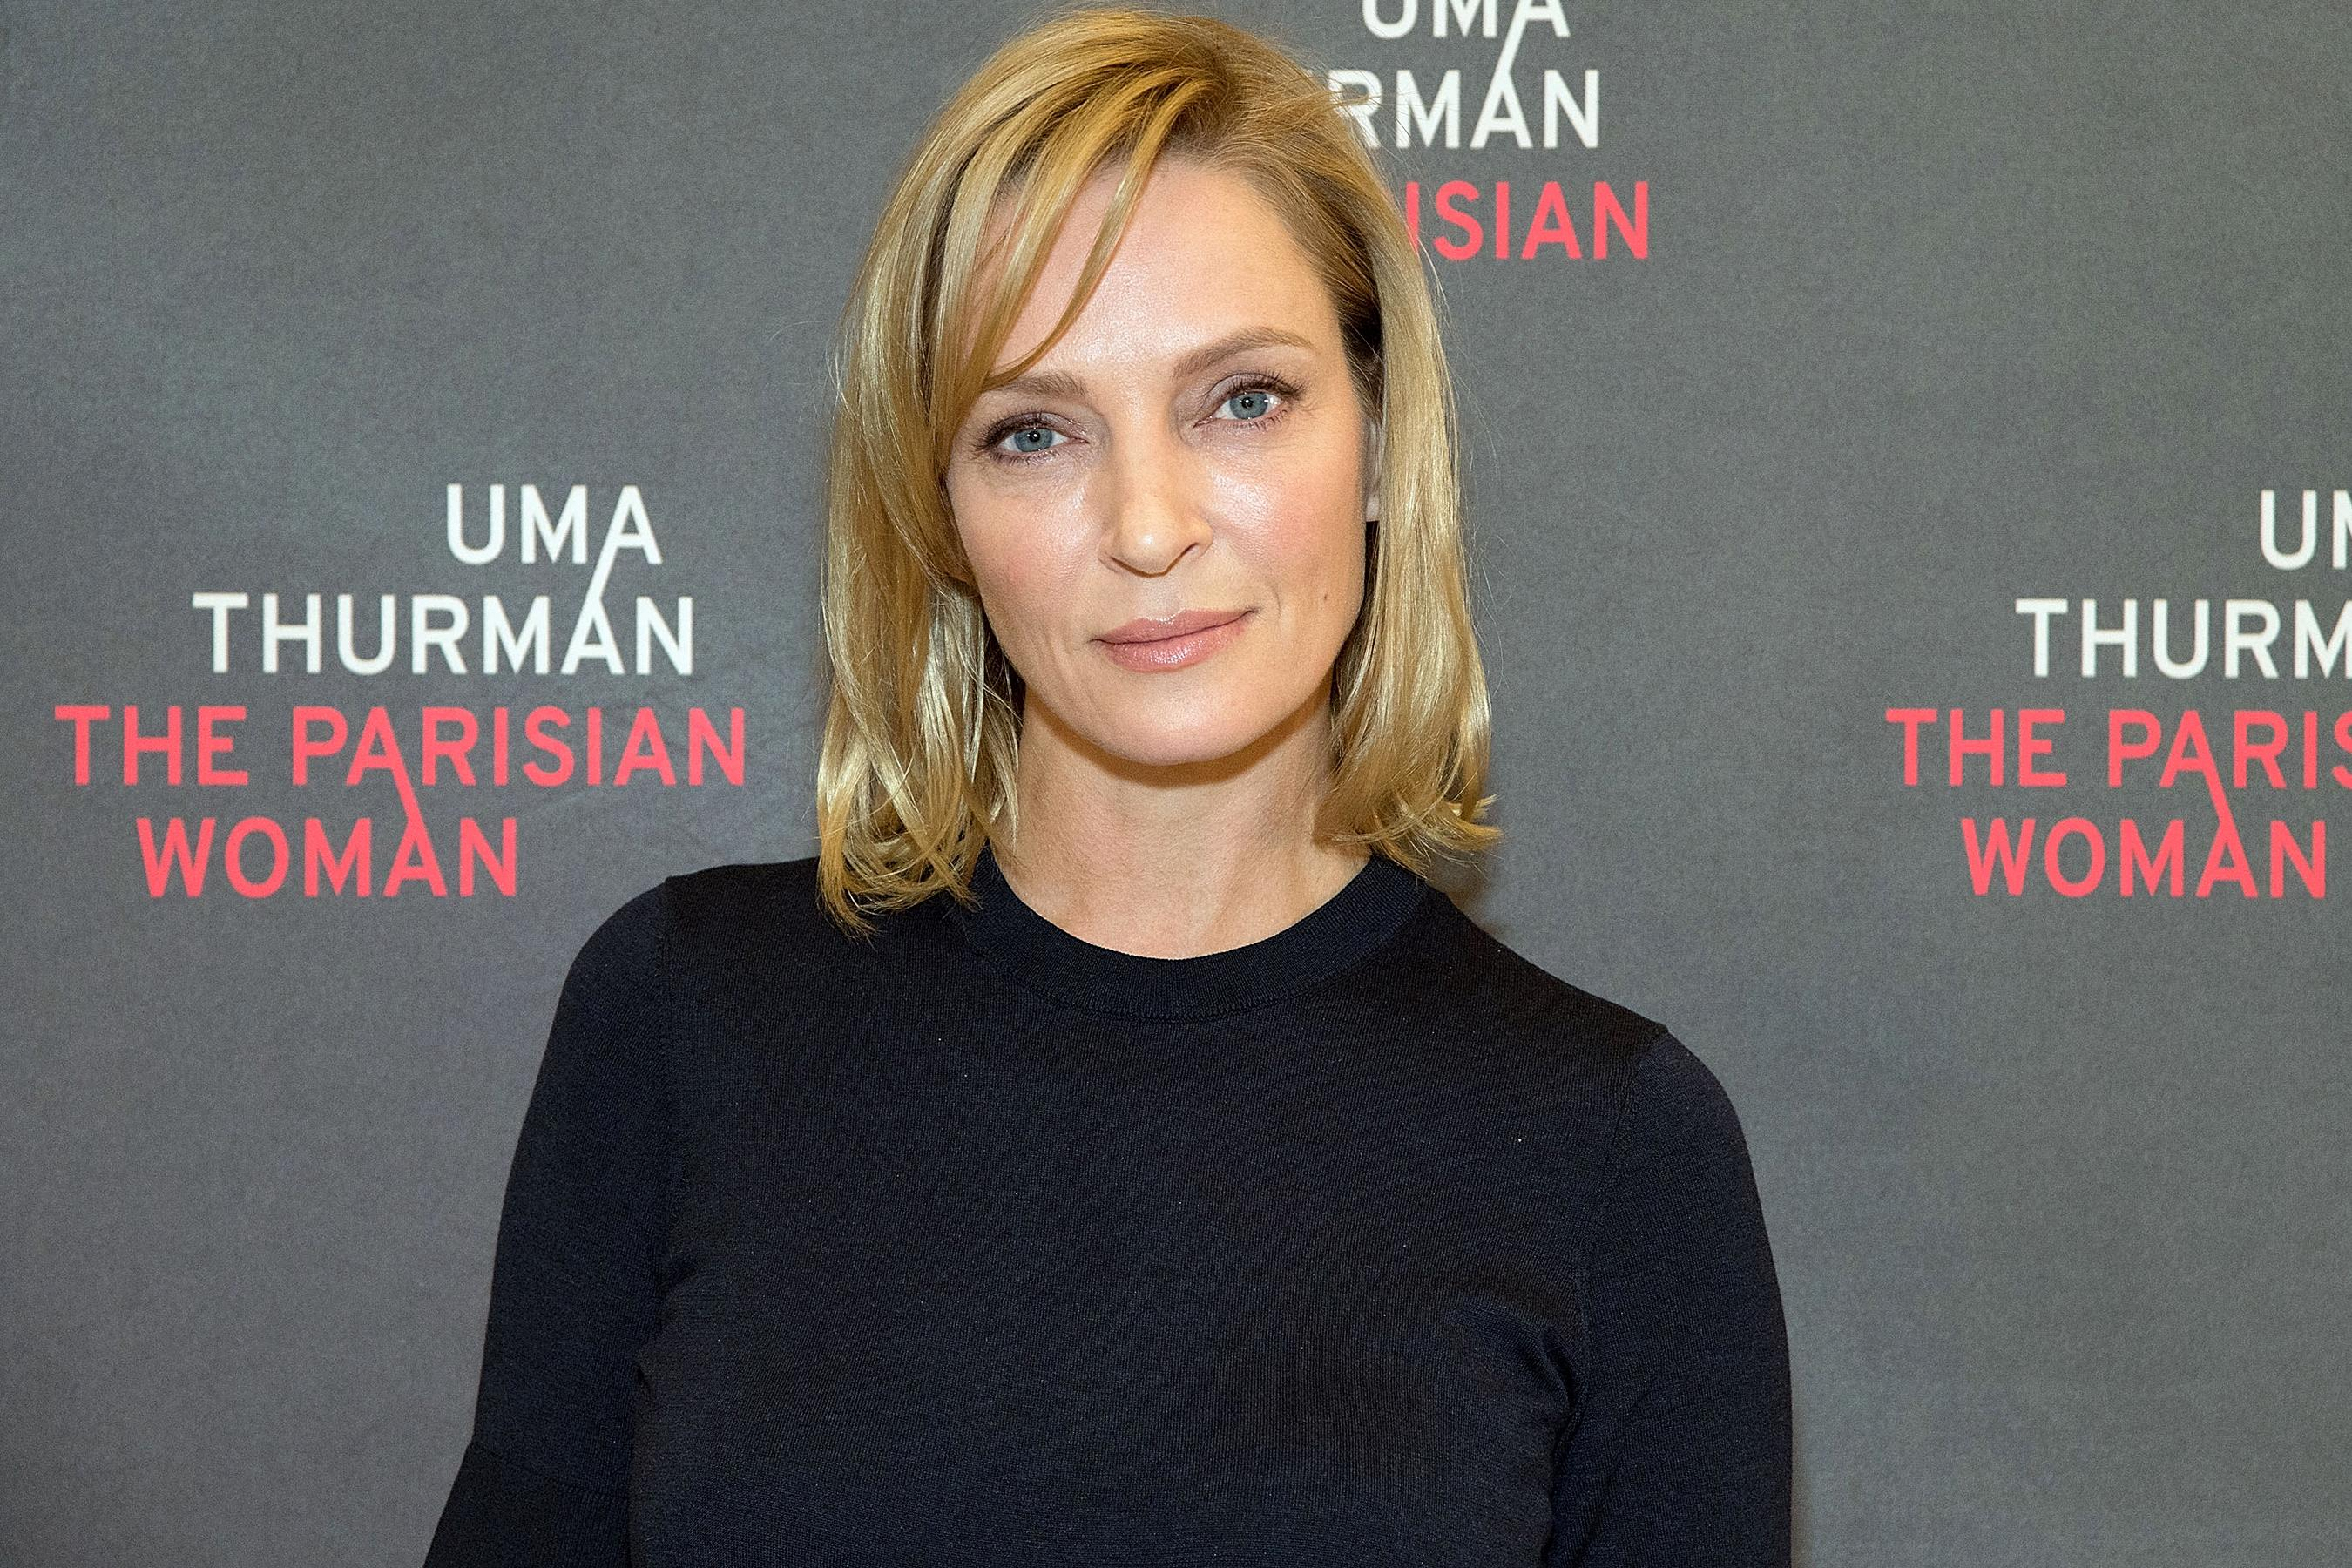 Alyssa Labelle Hot uma thurman breaks silence on harvey weinstein, details